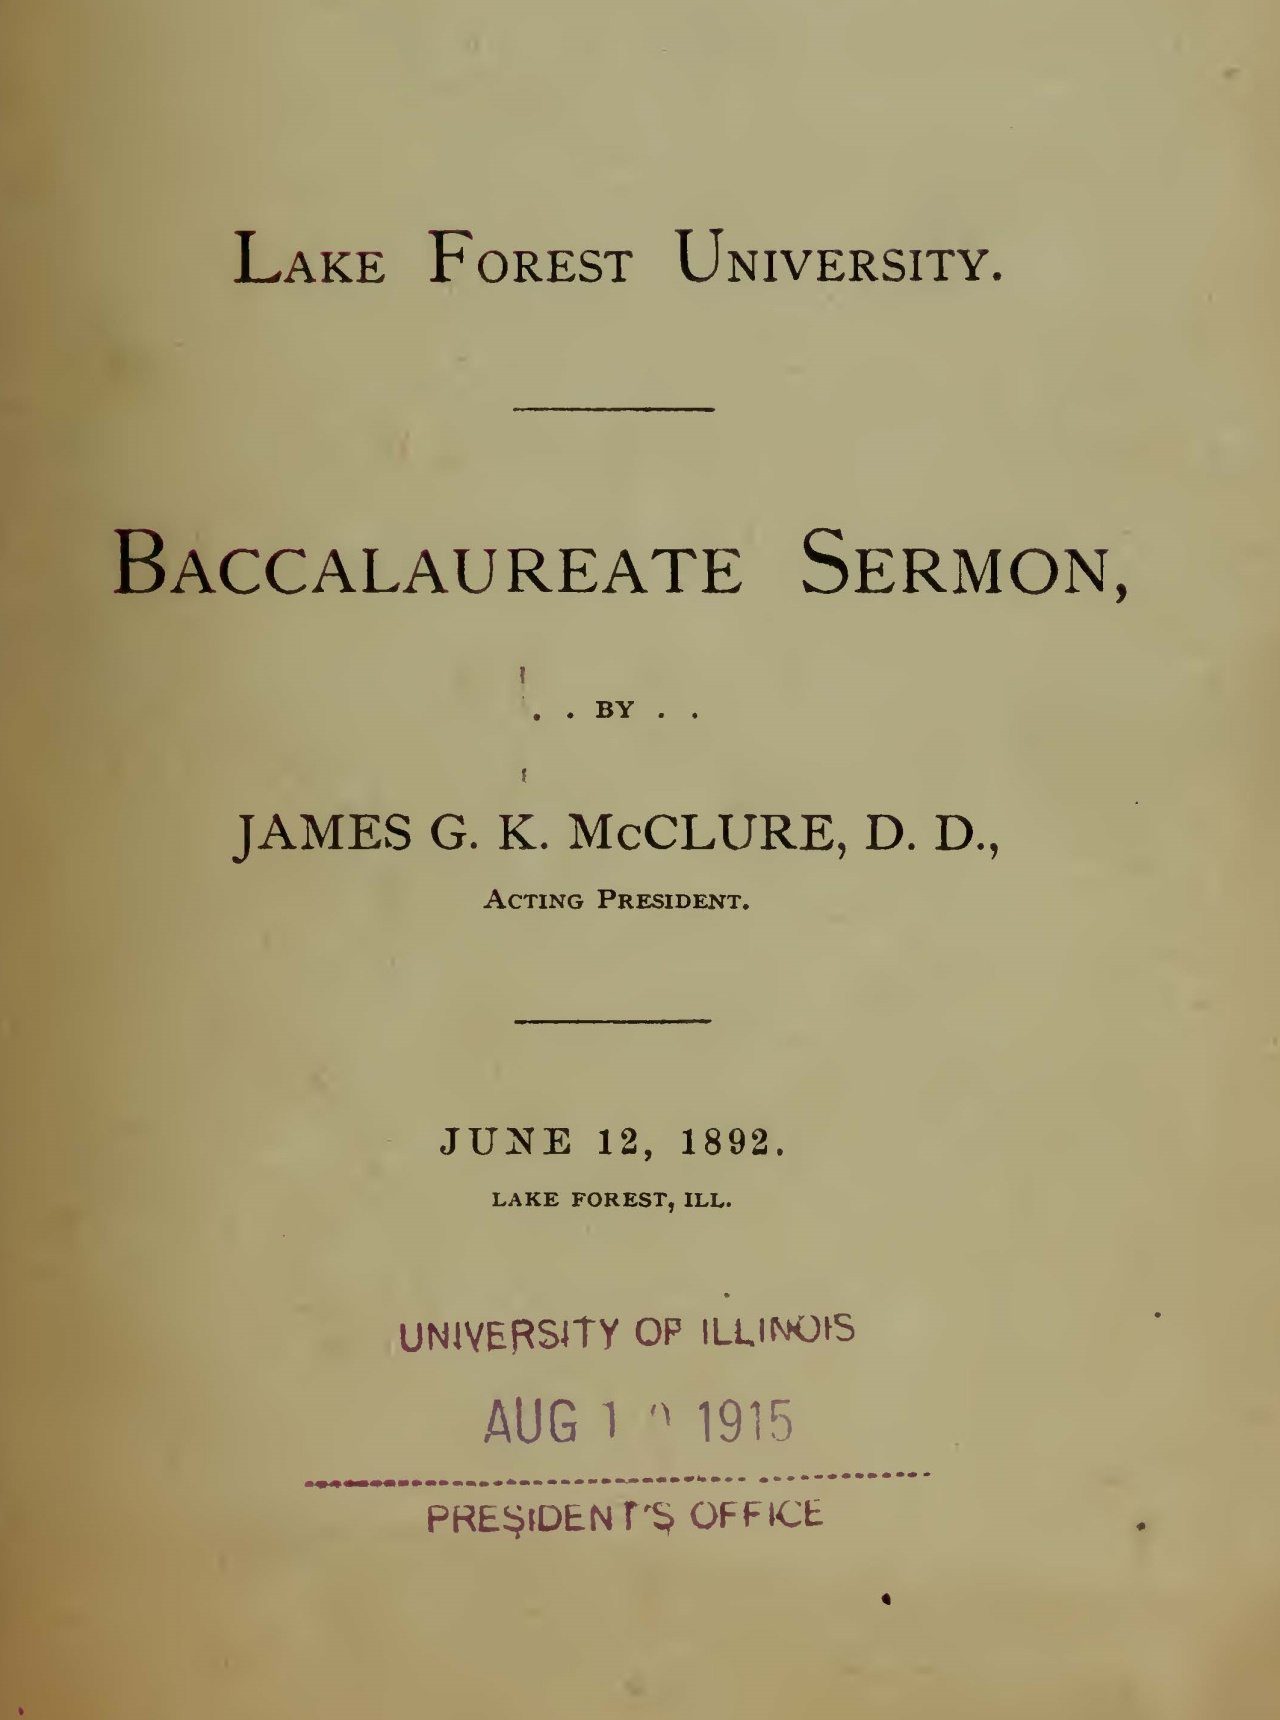 McClure, Sr., James Gore King, Baccalaureate Address 1892 Title Page.jpg